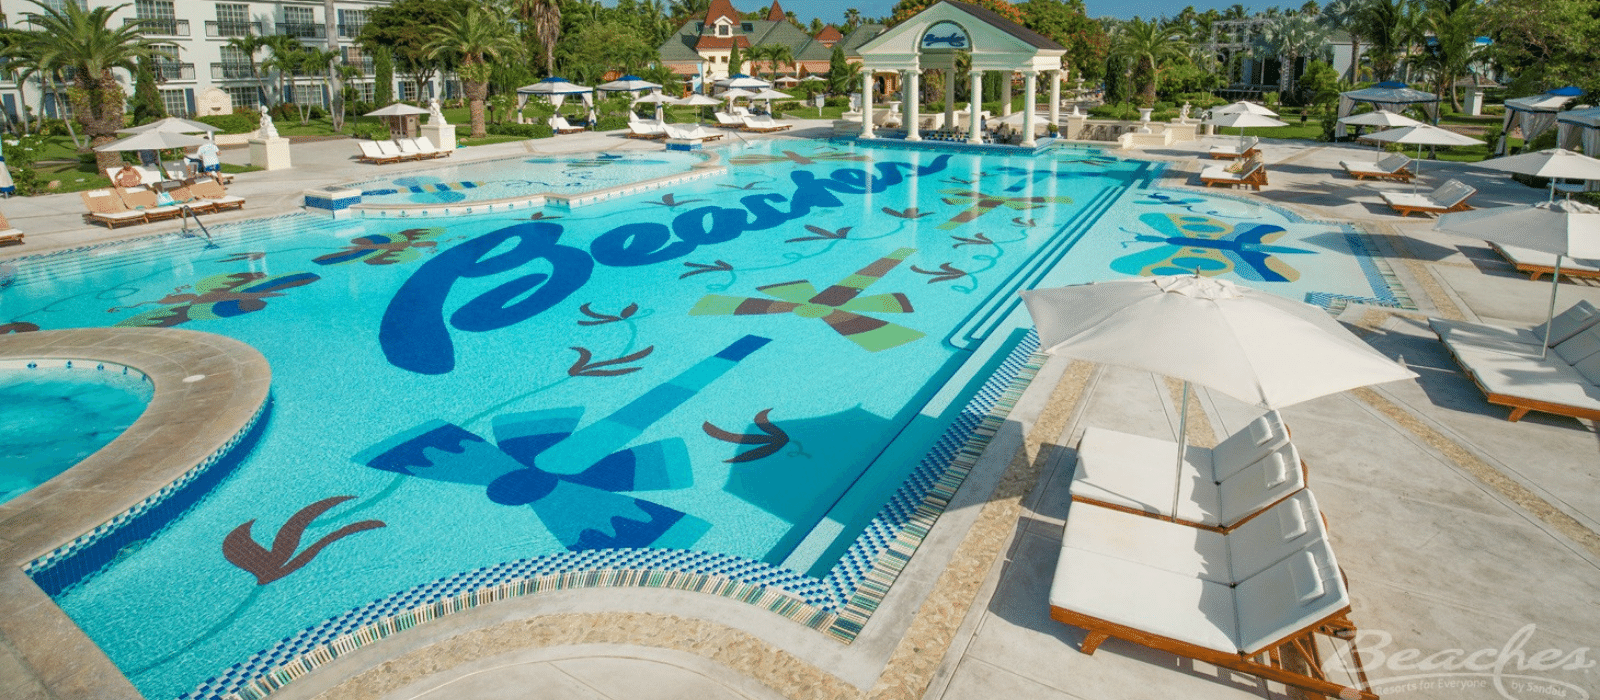 Pools At Beaches Turks And Caicos